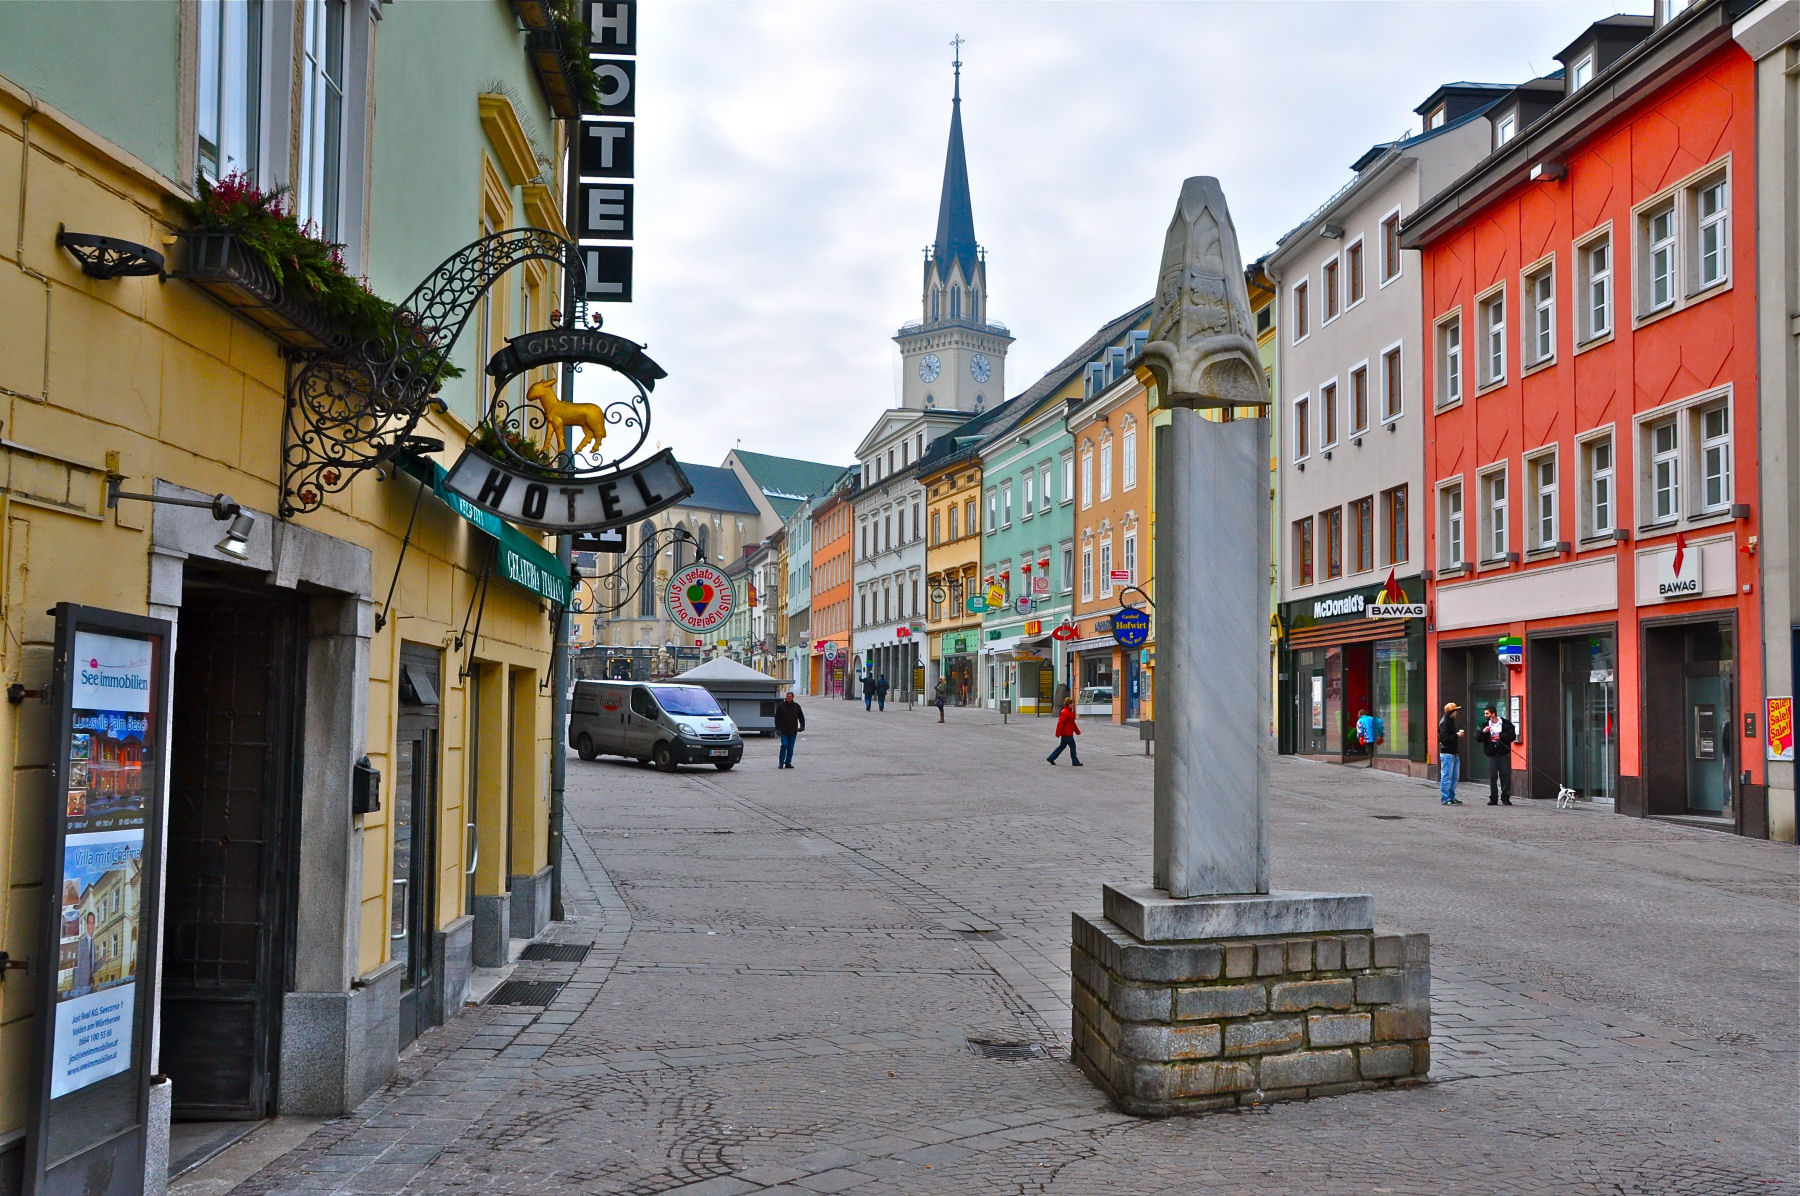 Villach is a lovely small Austrian town